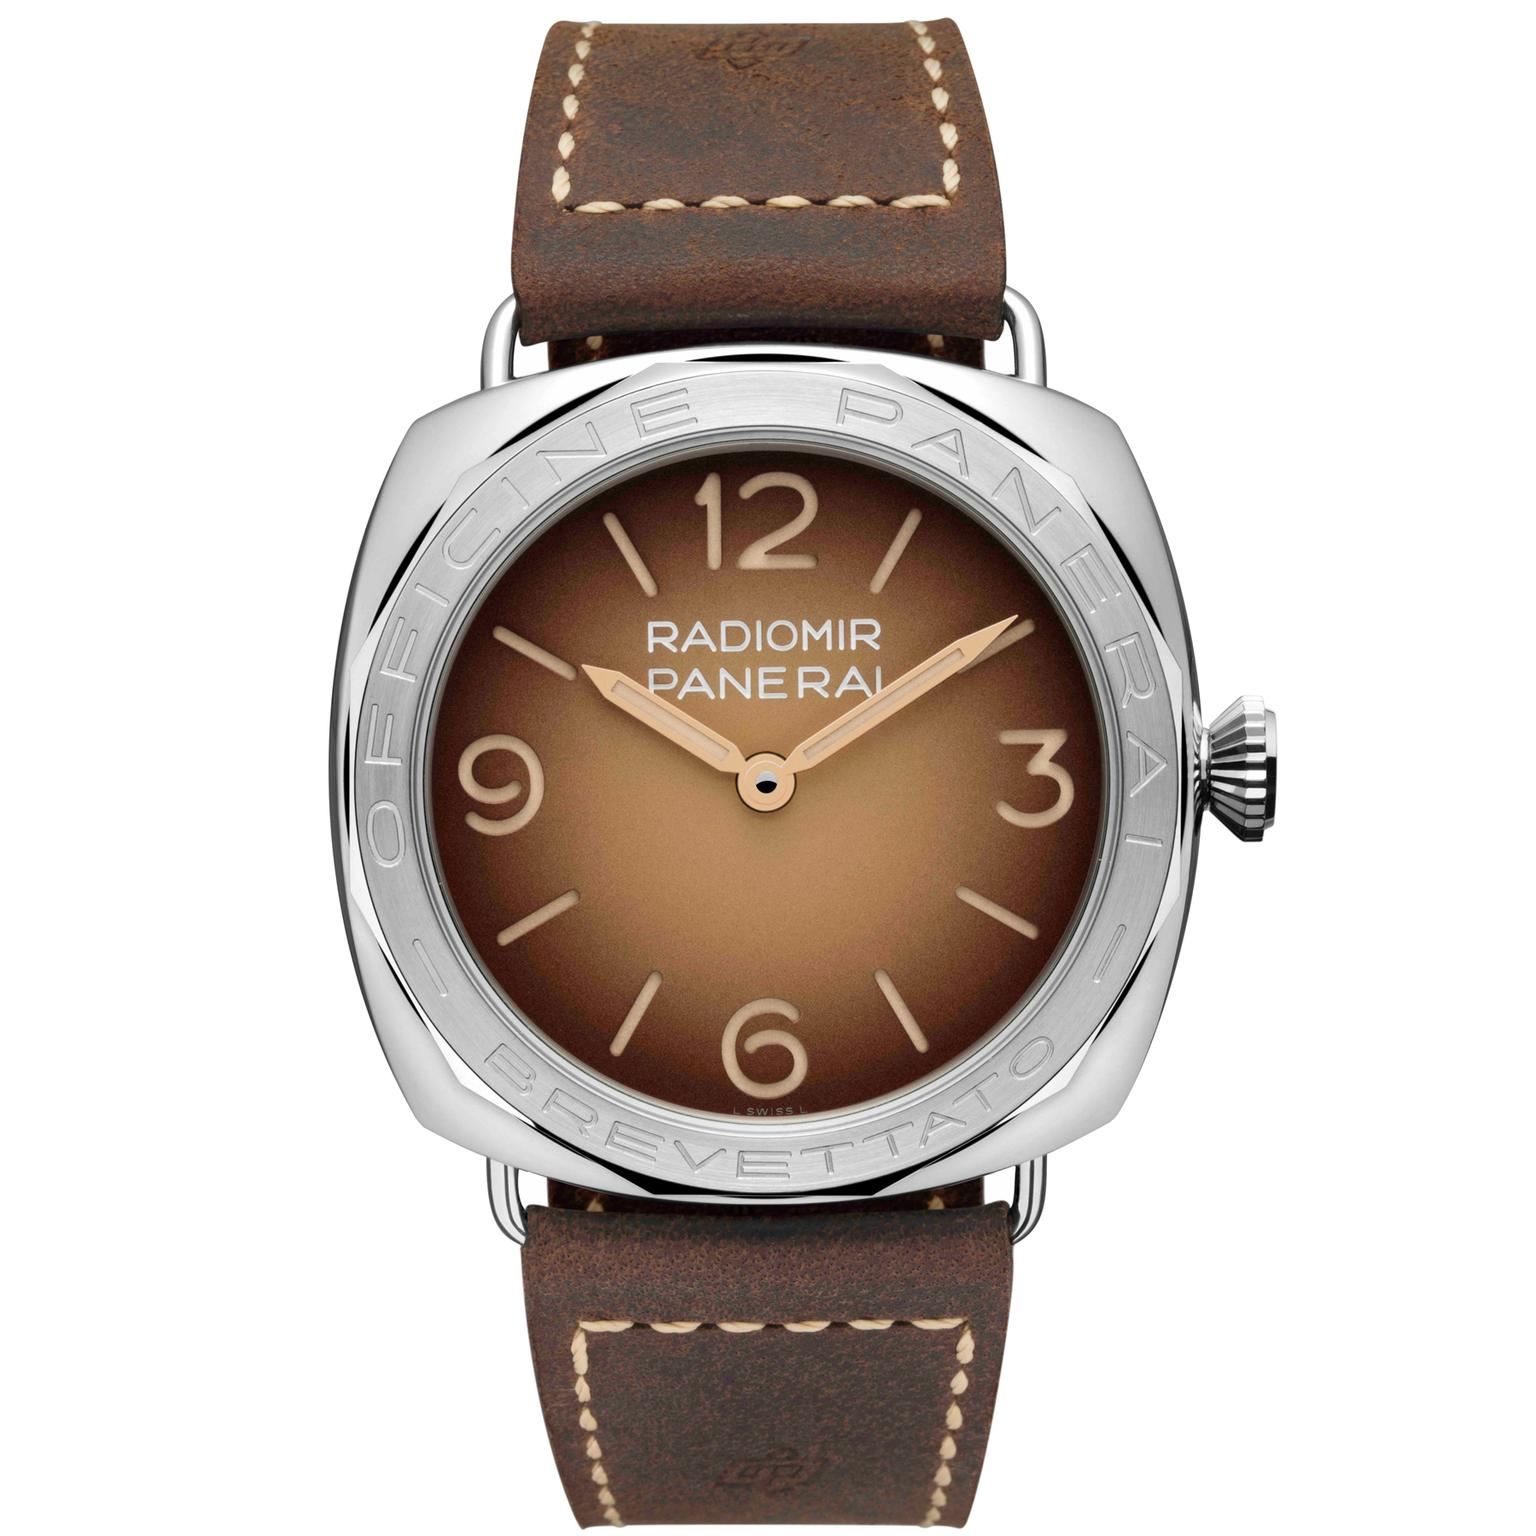 Panerai Radiomir 3 Days Acciaio brown dial watch